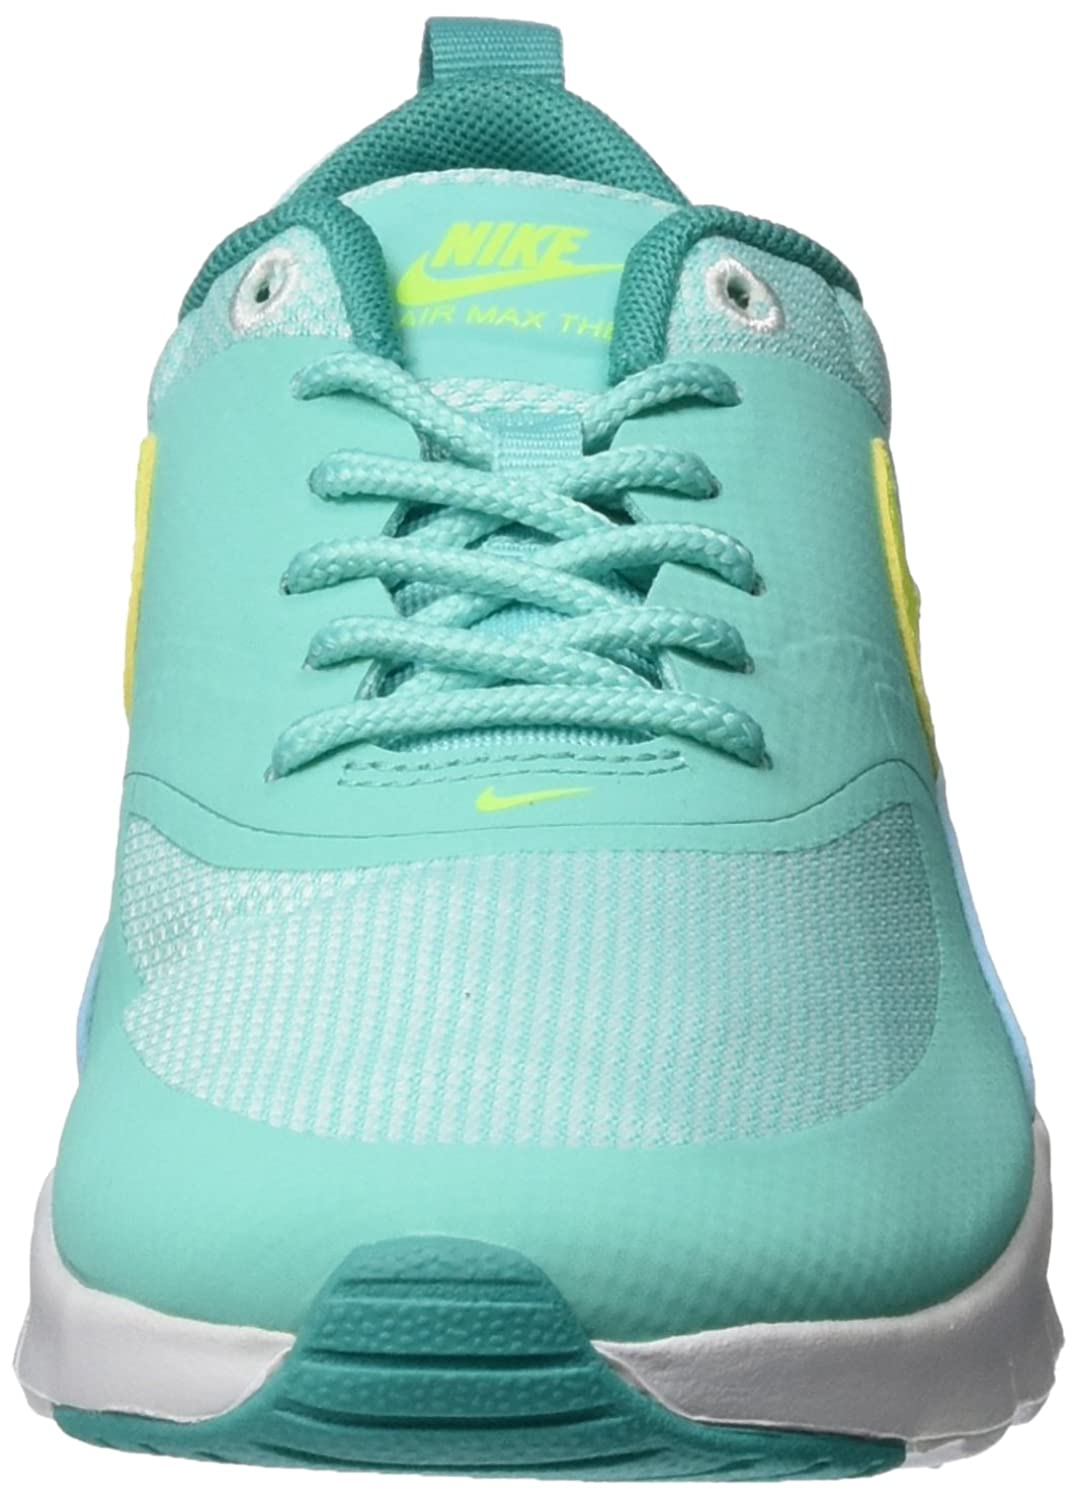 buy popular 47db1 ec451 Nike Air Max Thea (GS), Chaussures de Running Entrainement Fille -  Turquoise (